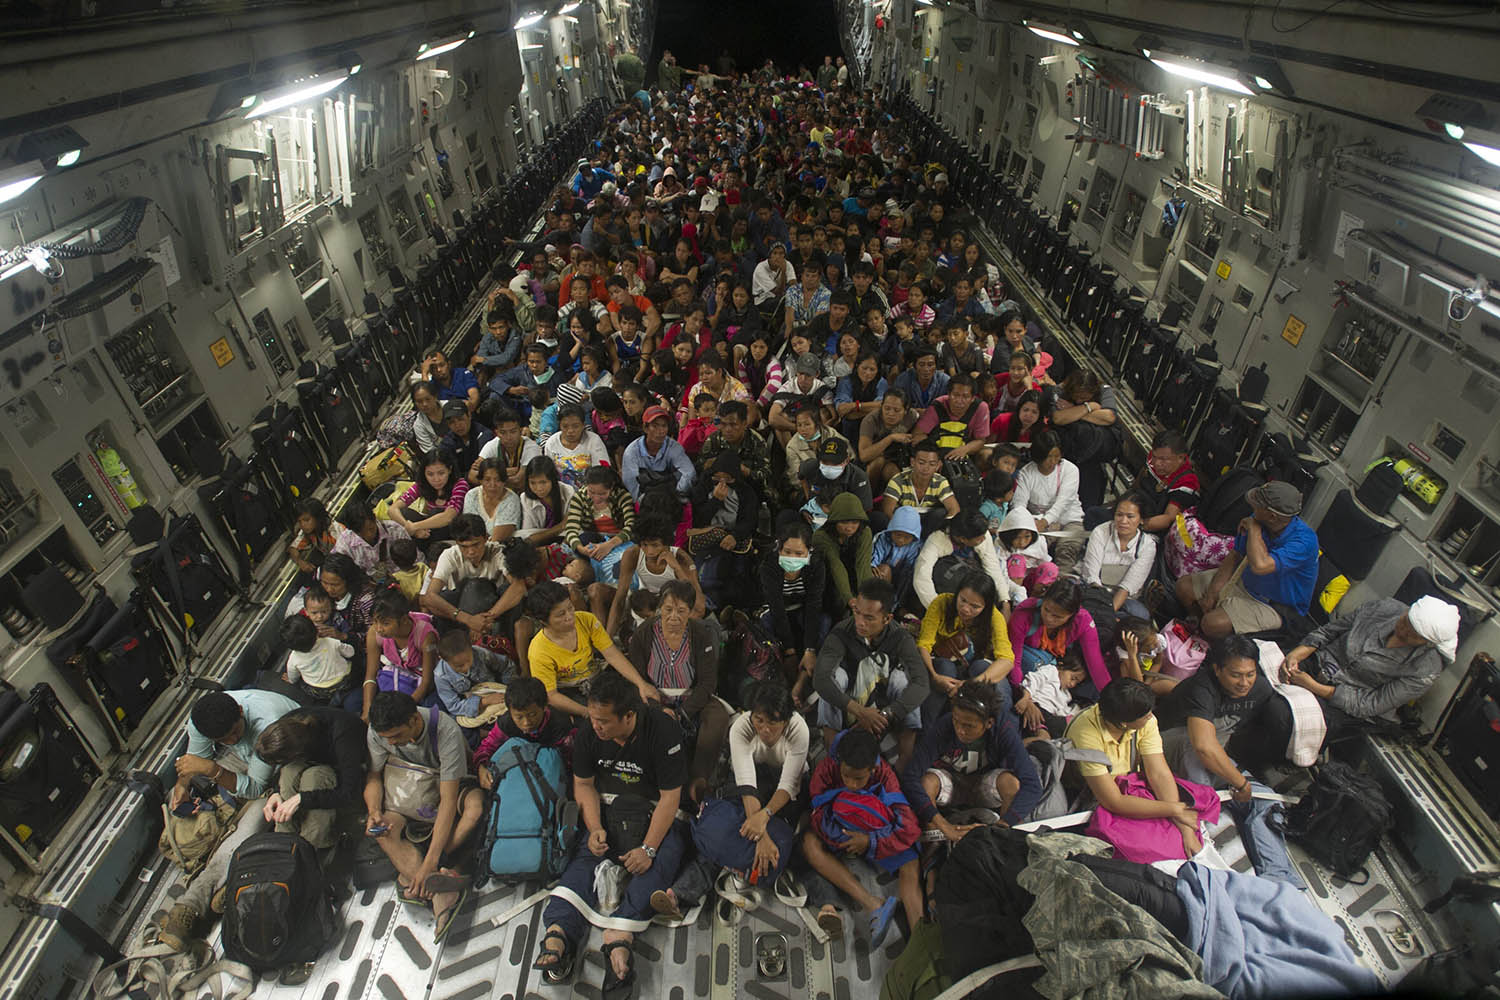 Nov. 22, 2013. This photo released by the U.S. Navy shows Tacloban residents displaced by Typhoon Haiyan fill the cargo hold of a C-17 Globemaster military cargo plane.